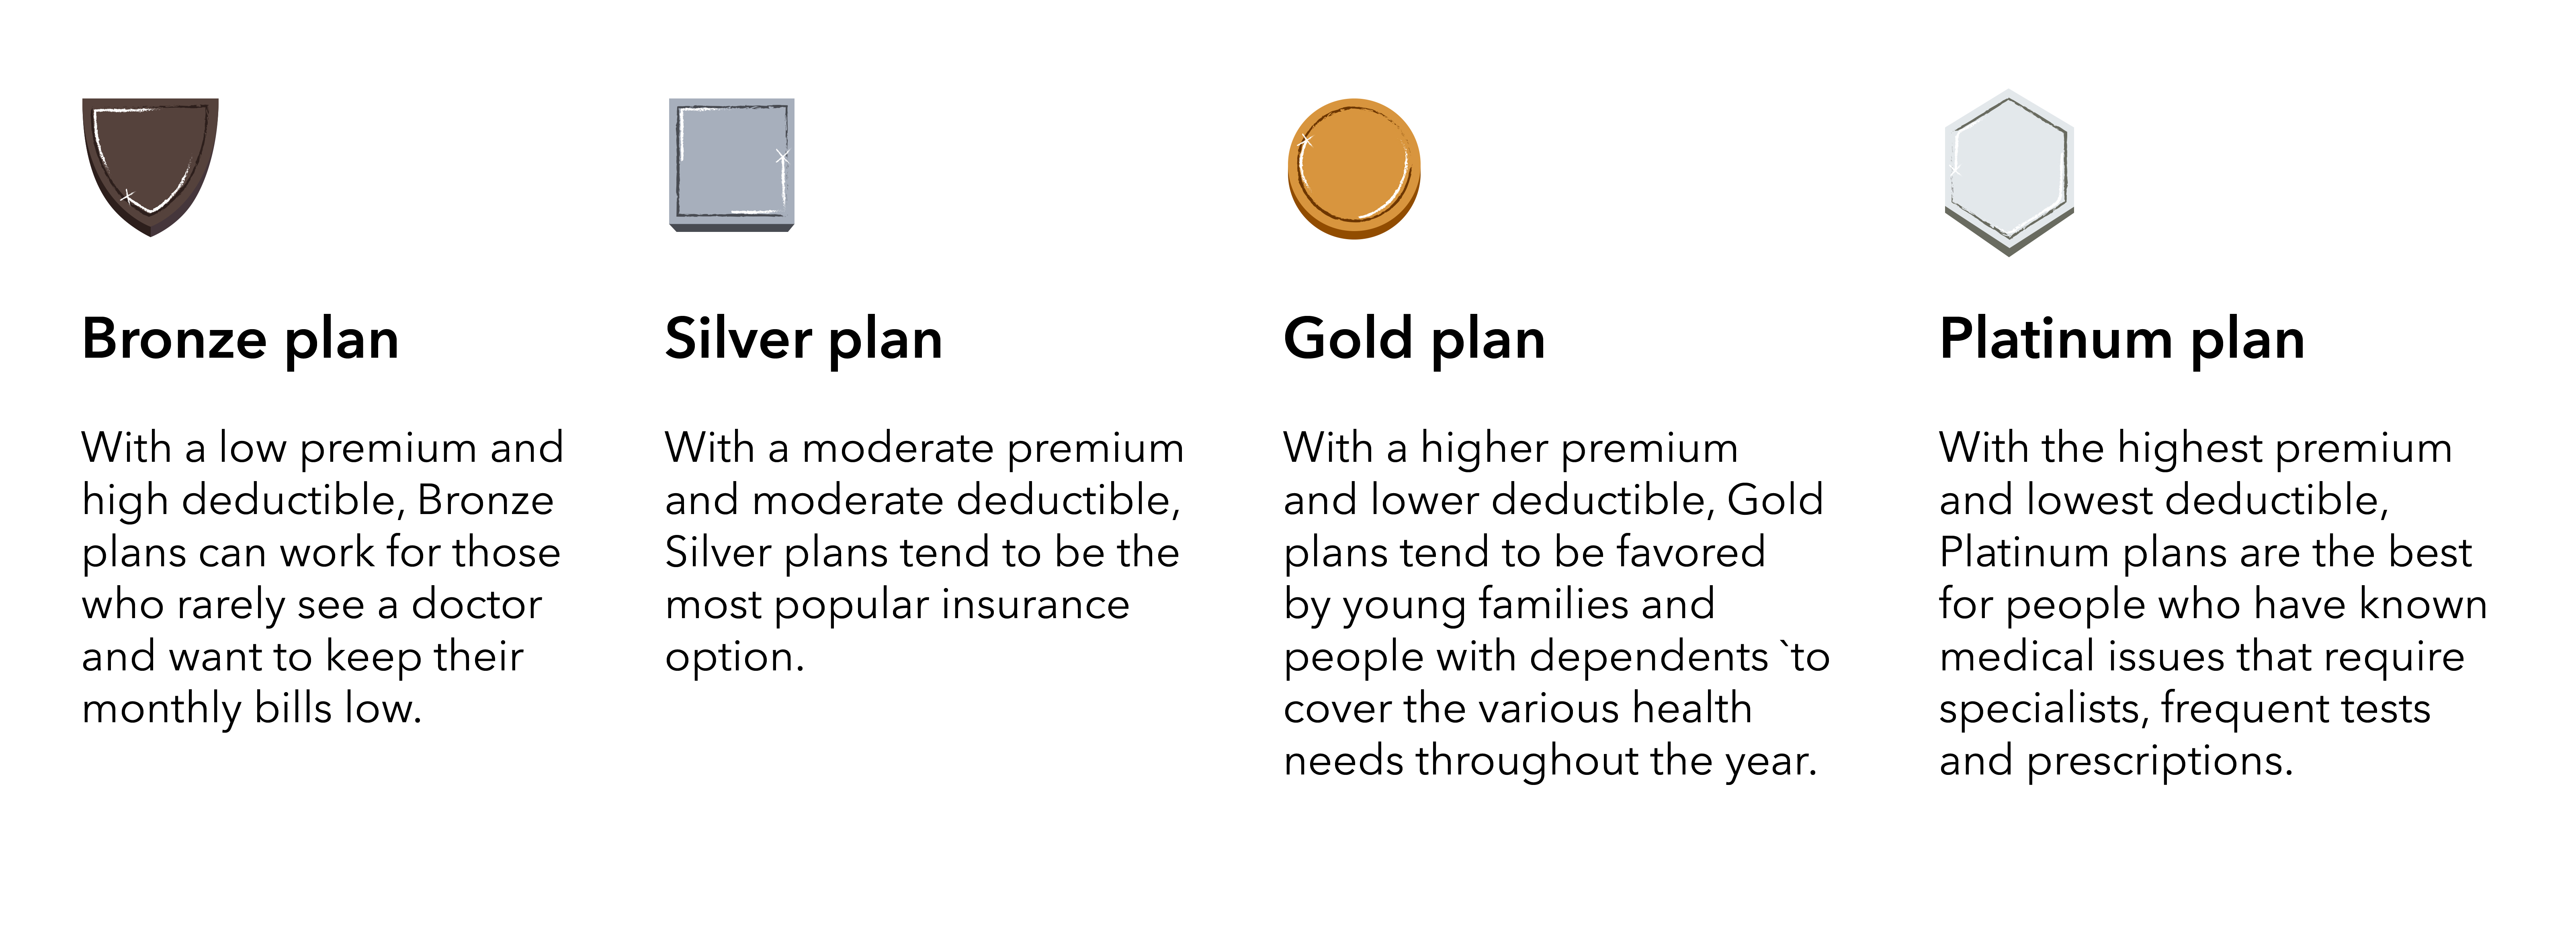 How And Why To Switch Your Individual Health Insurance Plan This Open Enrollment